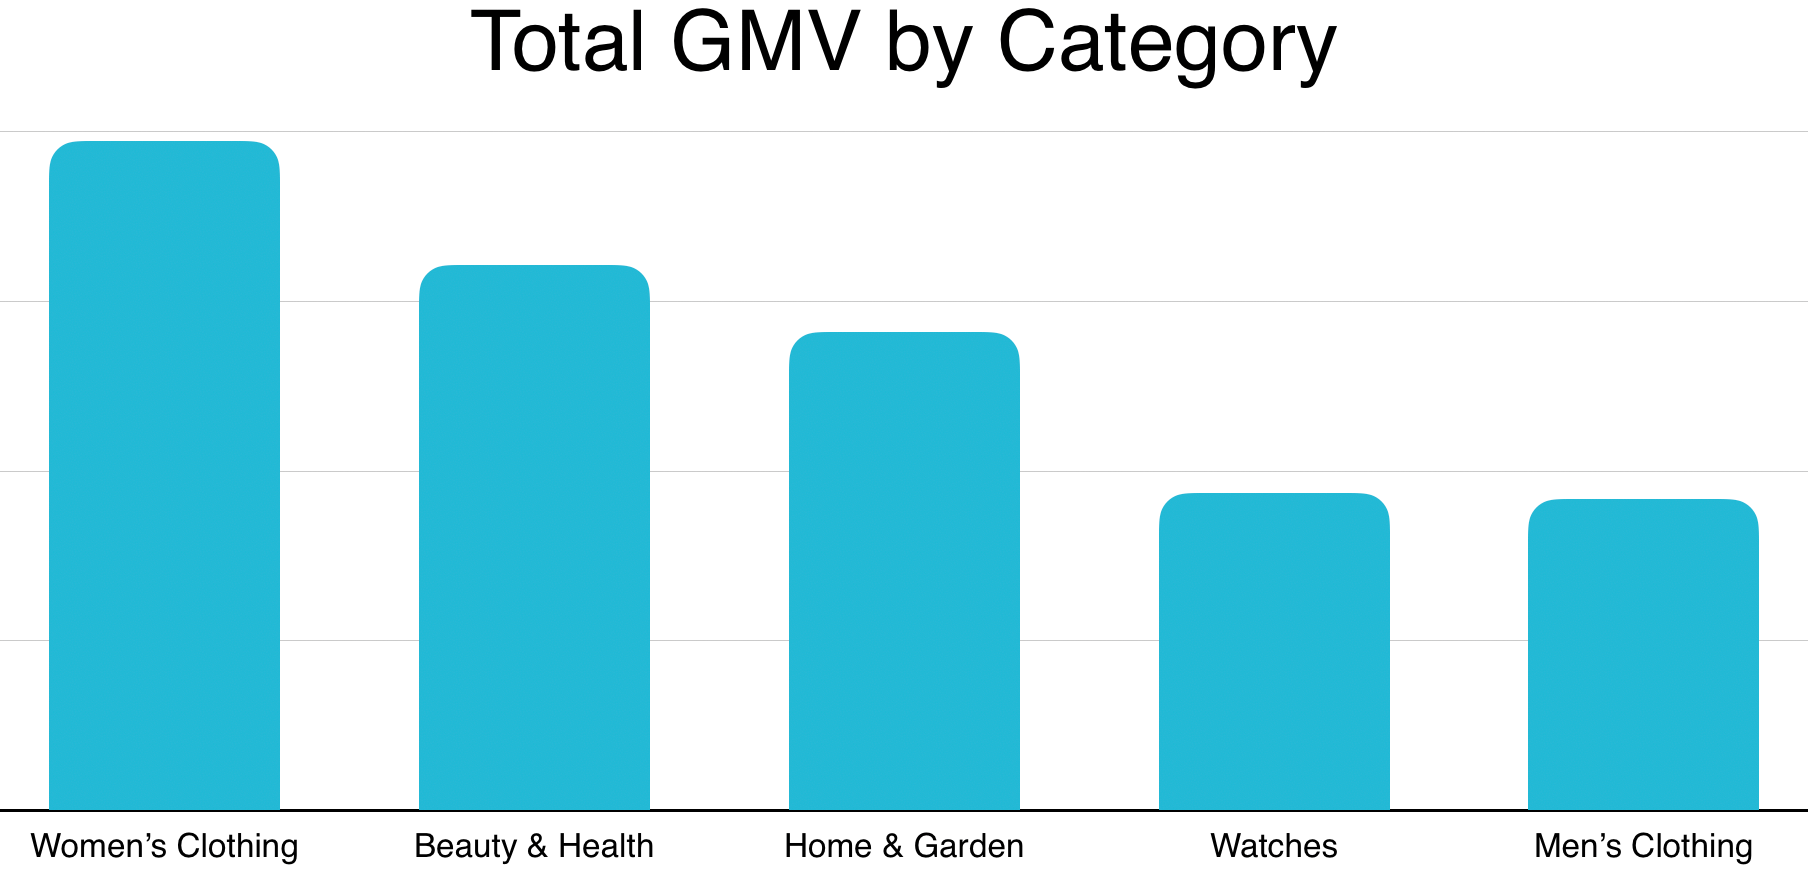 2019 Niche French Markets by GMV